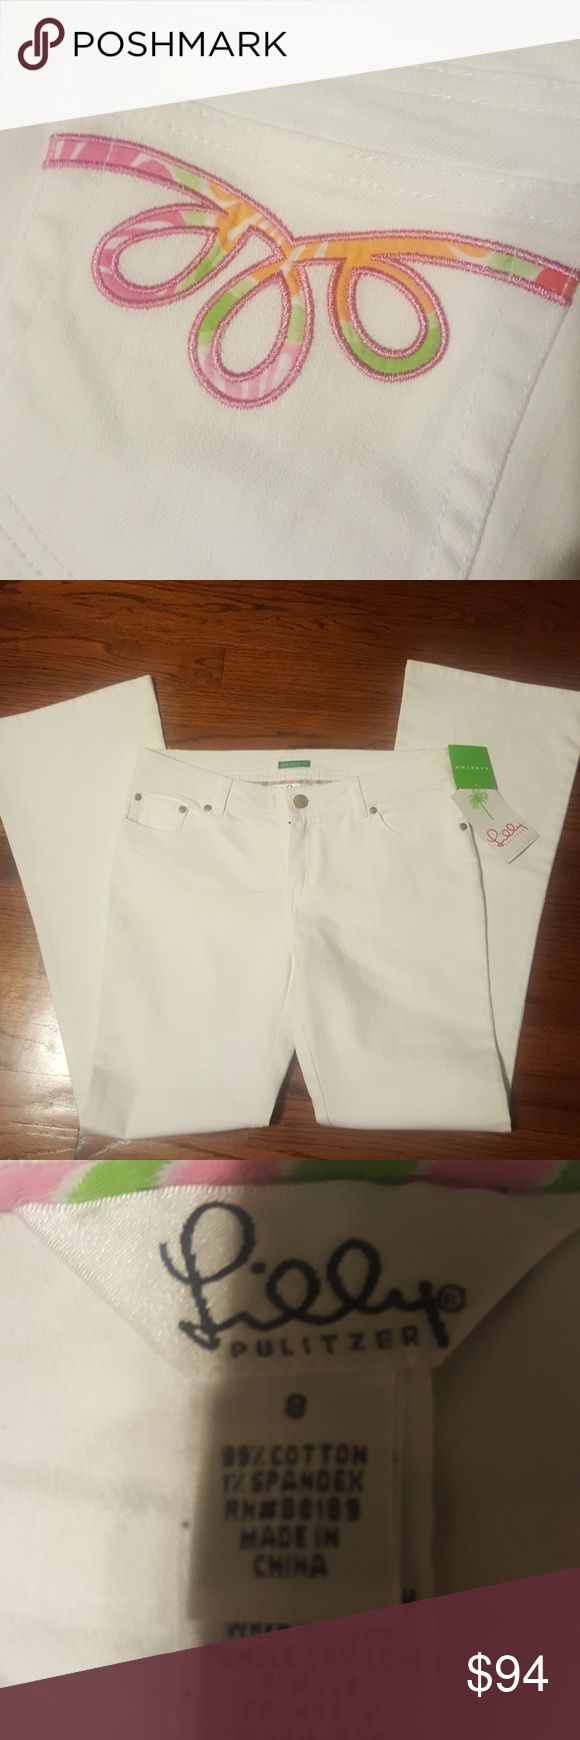 """Lilly Pulitizer white stretch jeans White palm fit jeans.  Style- Supreme Jean Applique .  Approximate Inseam-31""""- waist 30"""" Lilly Pulitzer Jeans"""